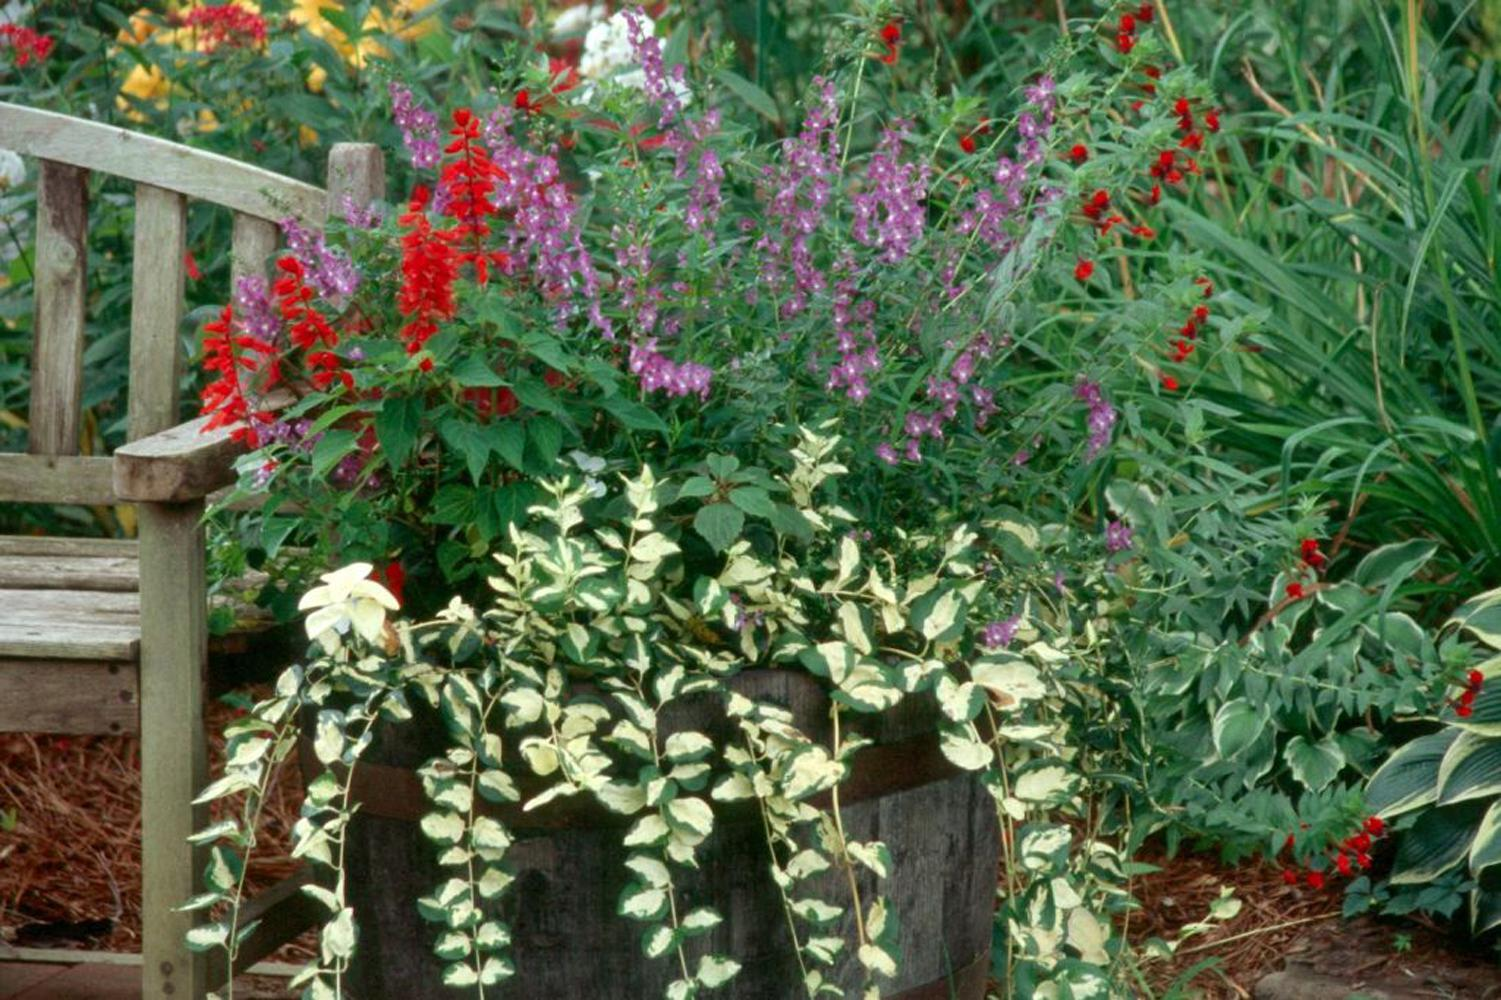 Mojo's Gem and Illumination offer the gardener great creamy-gold and green variegation on a vigorous groundcover or vining plant that will hang gracefully from a basket or cascade over the rim of a mixed container.